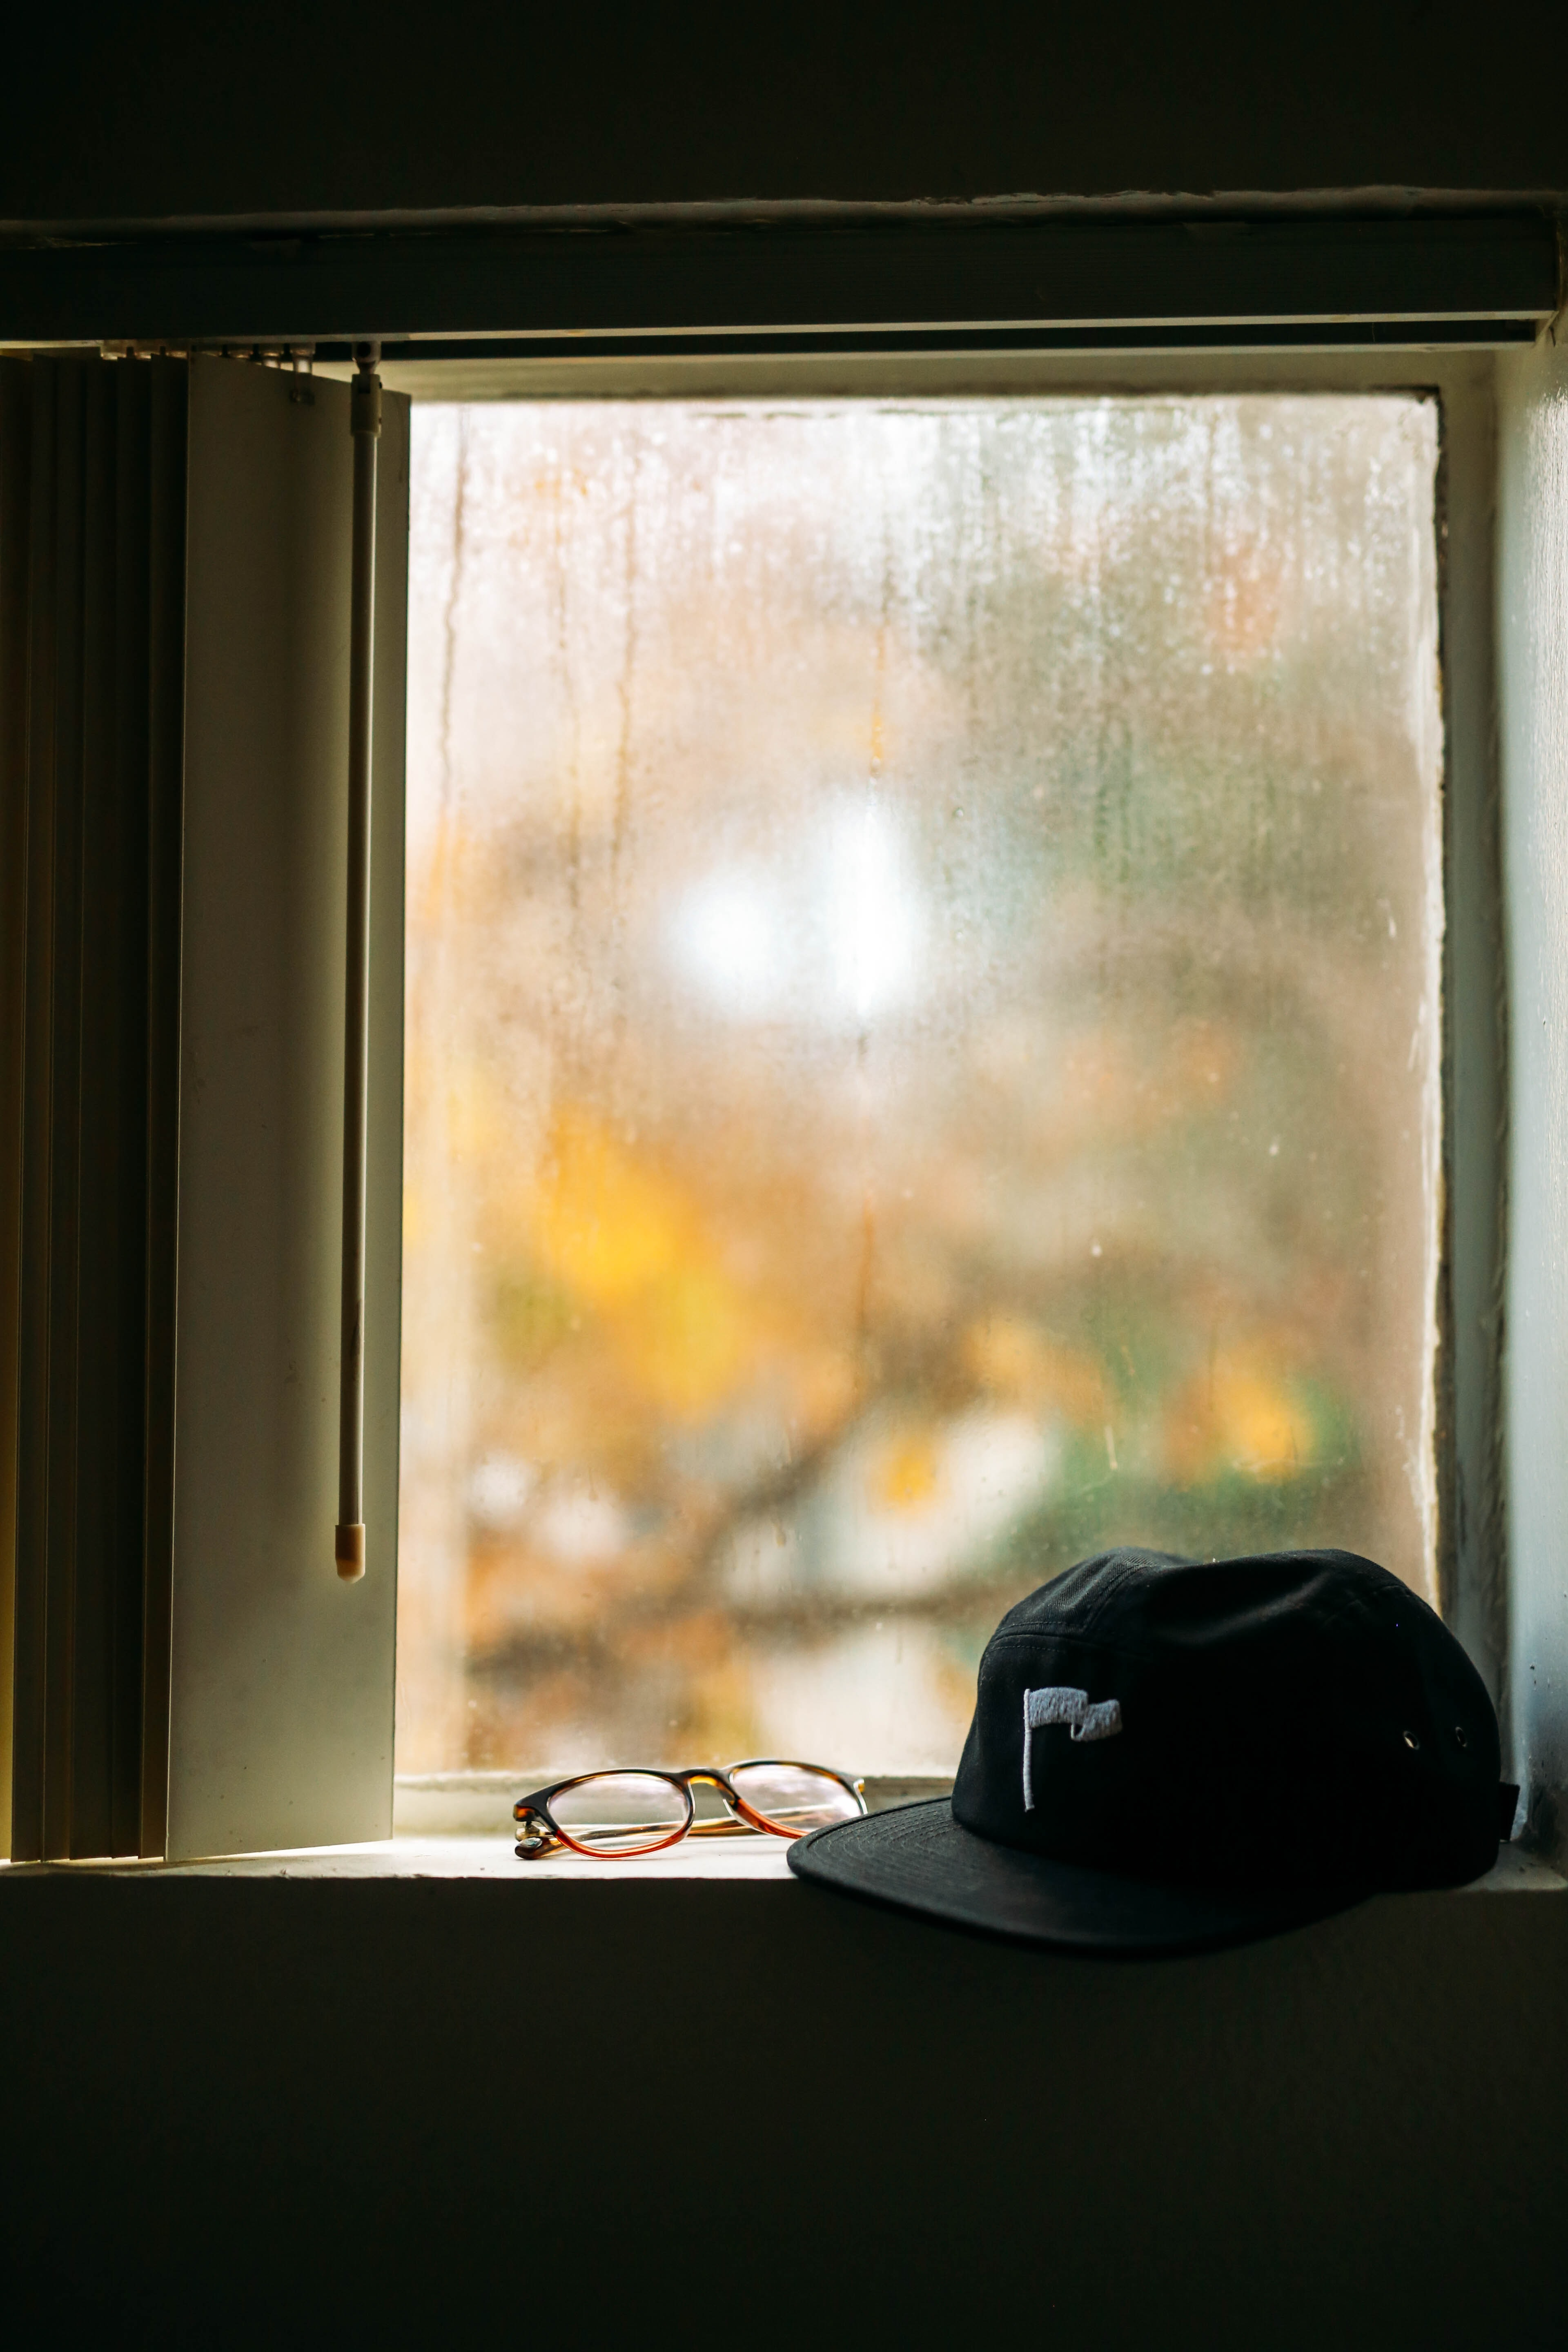 black cap and eyeglasses in front of window